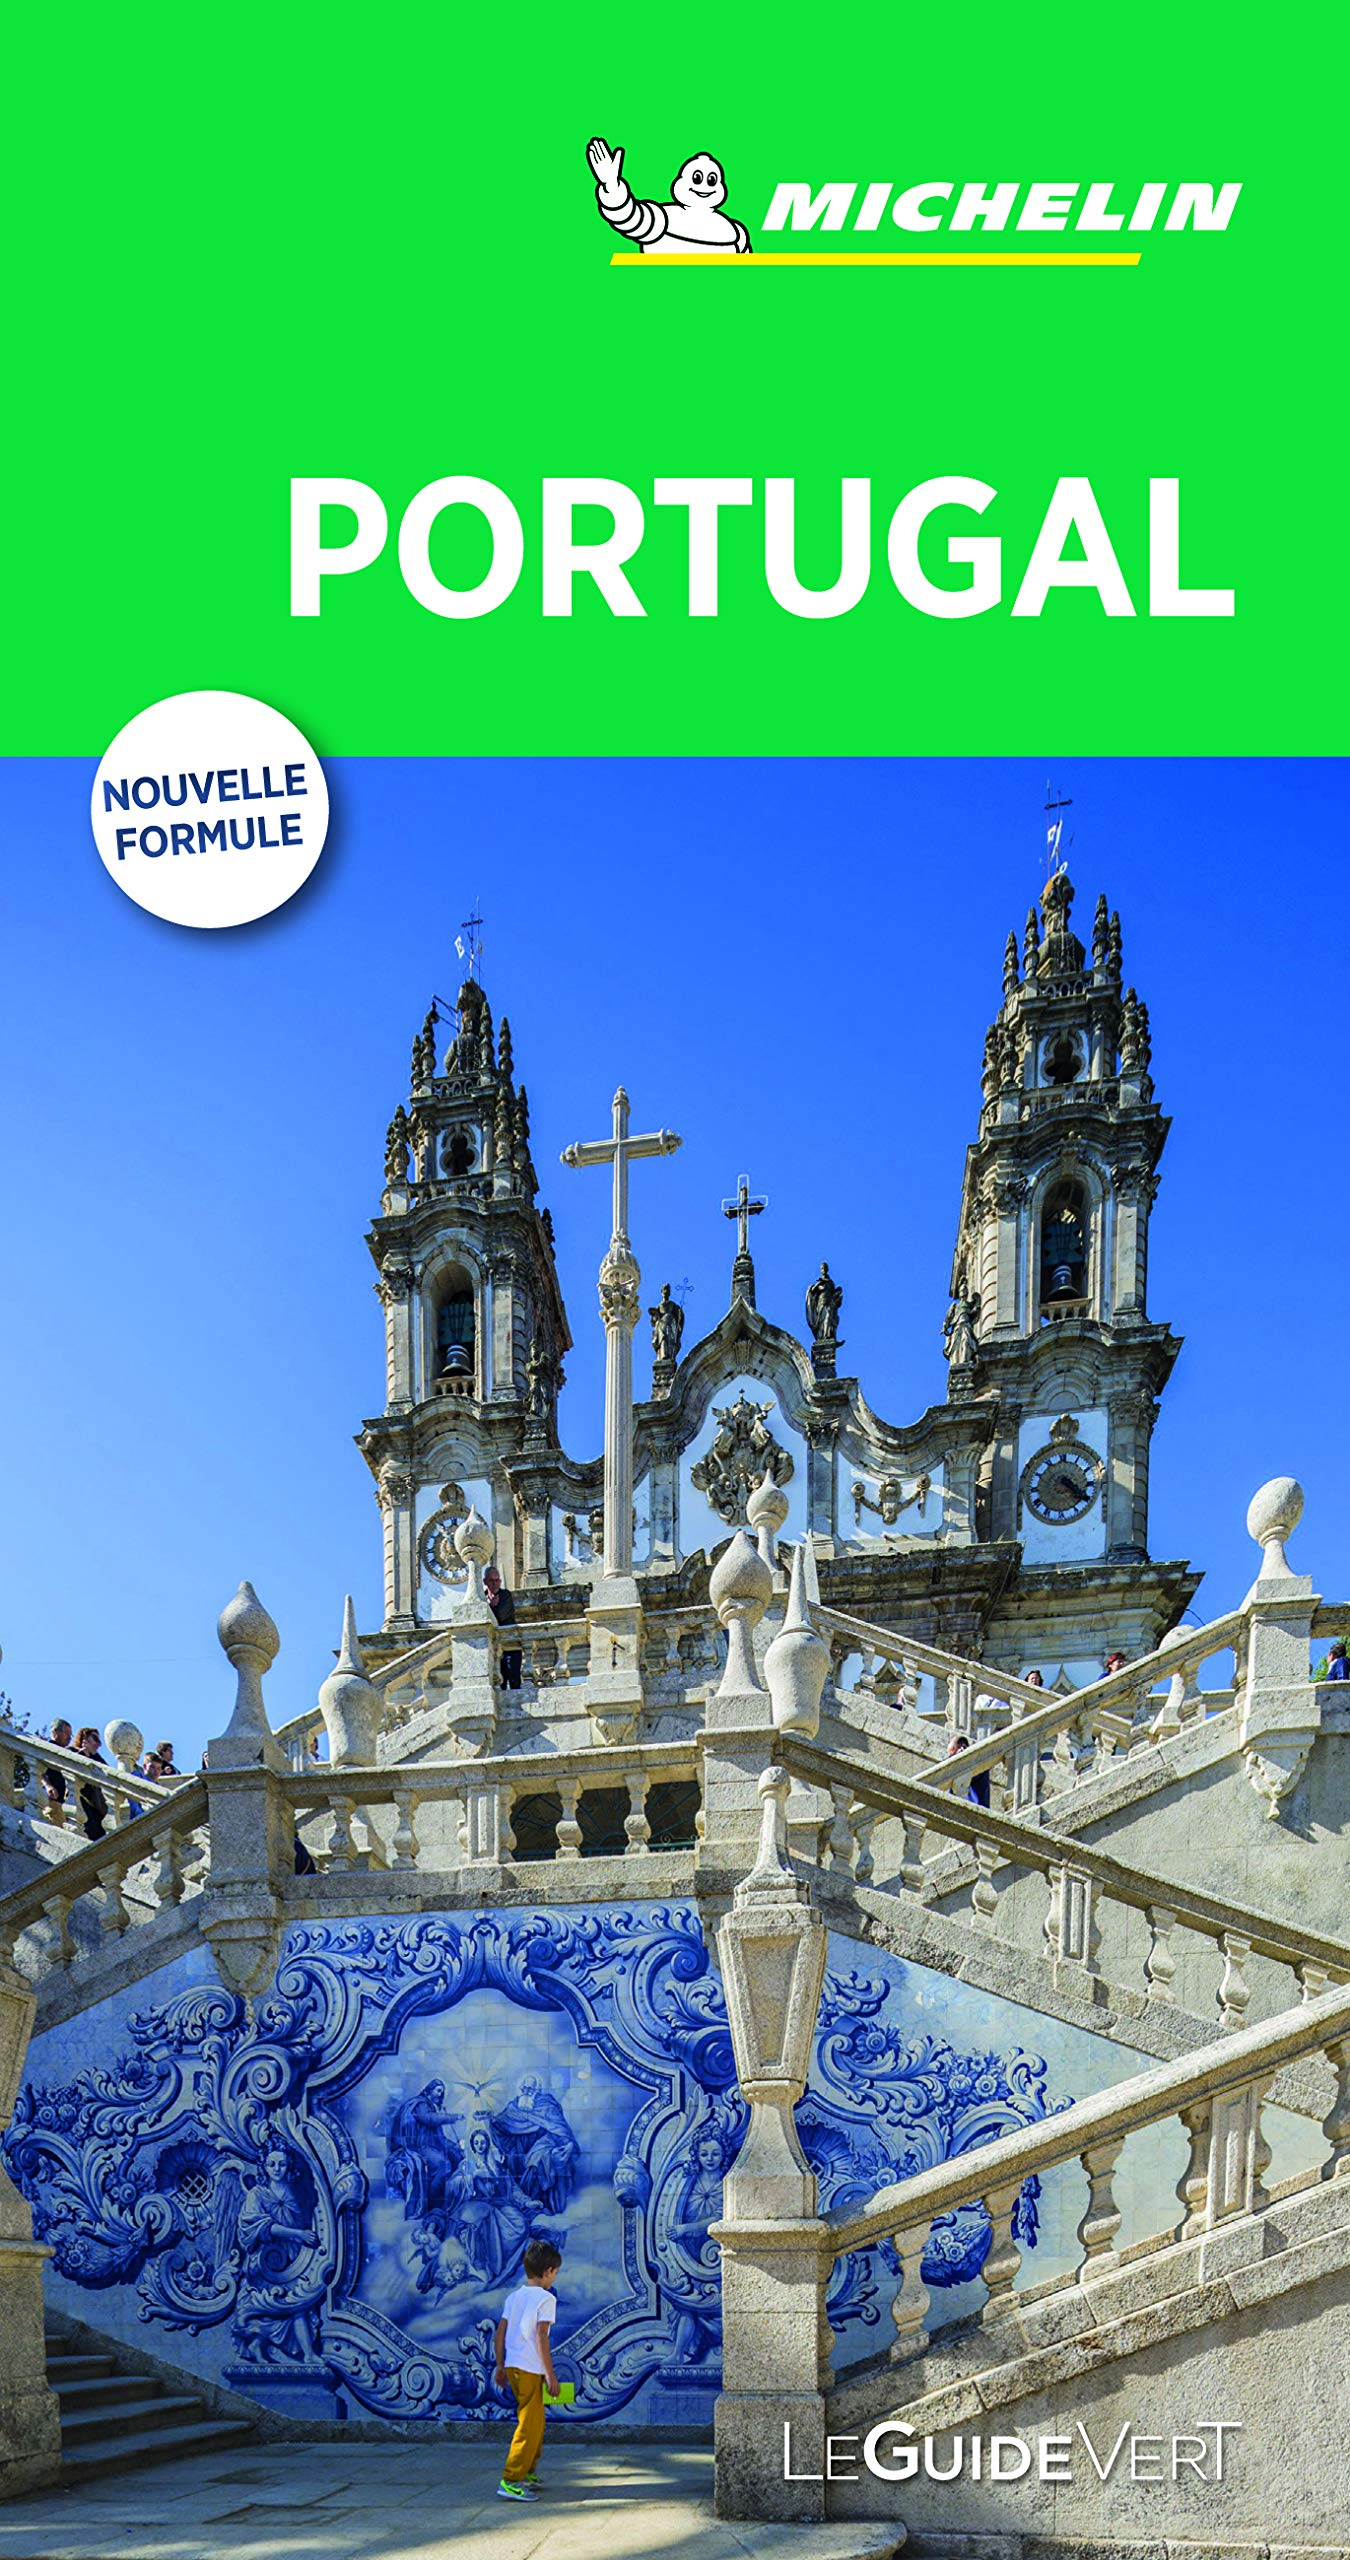 Portugal (Le Guide Vert)  (La Guía Verde Michelin): Amazon.es: MICHELIN: Libros en idiomas extranjeros